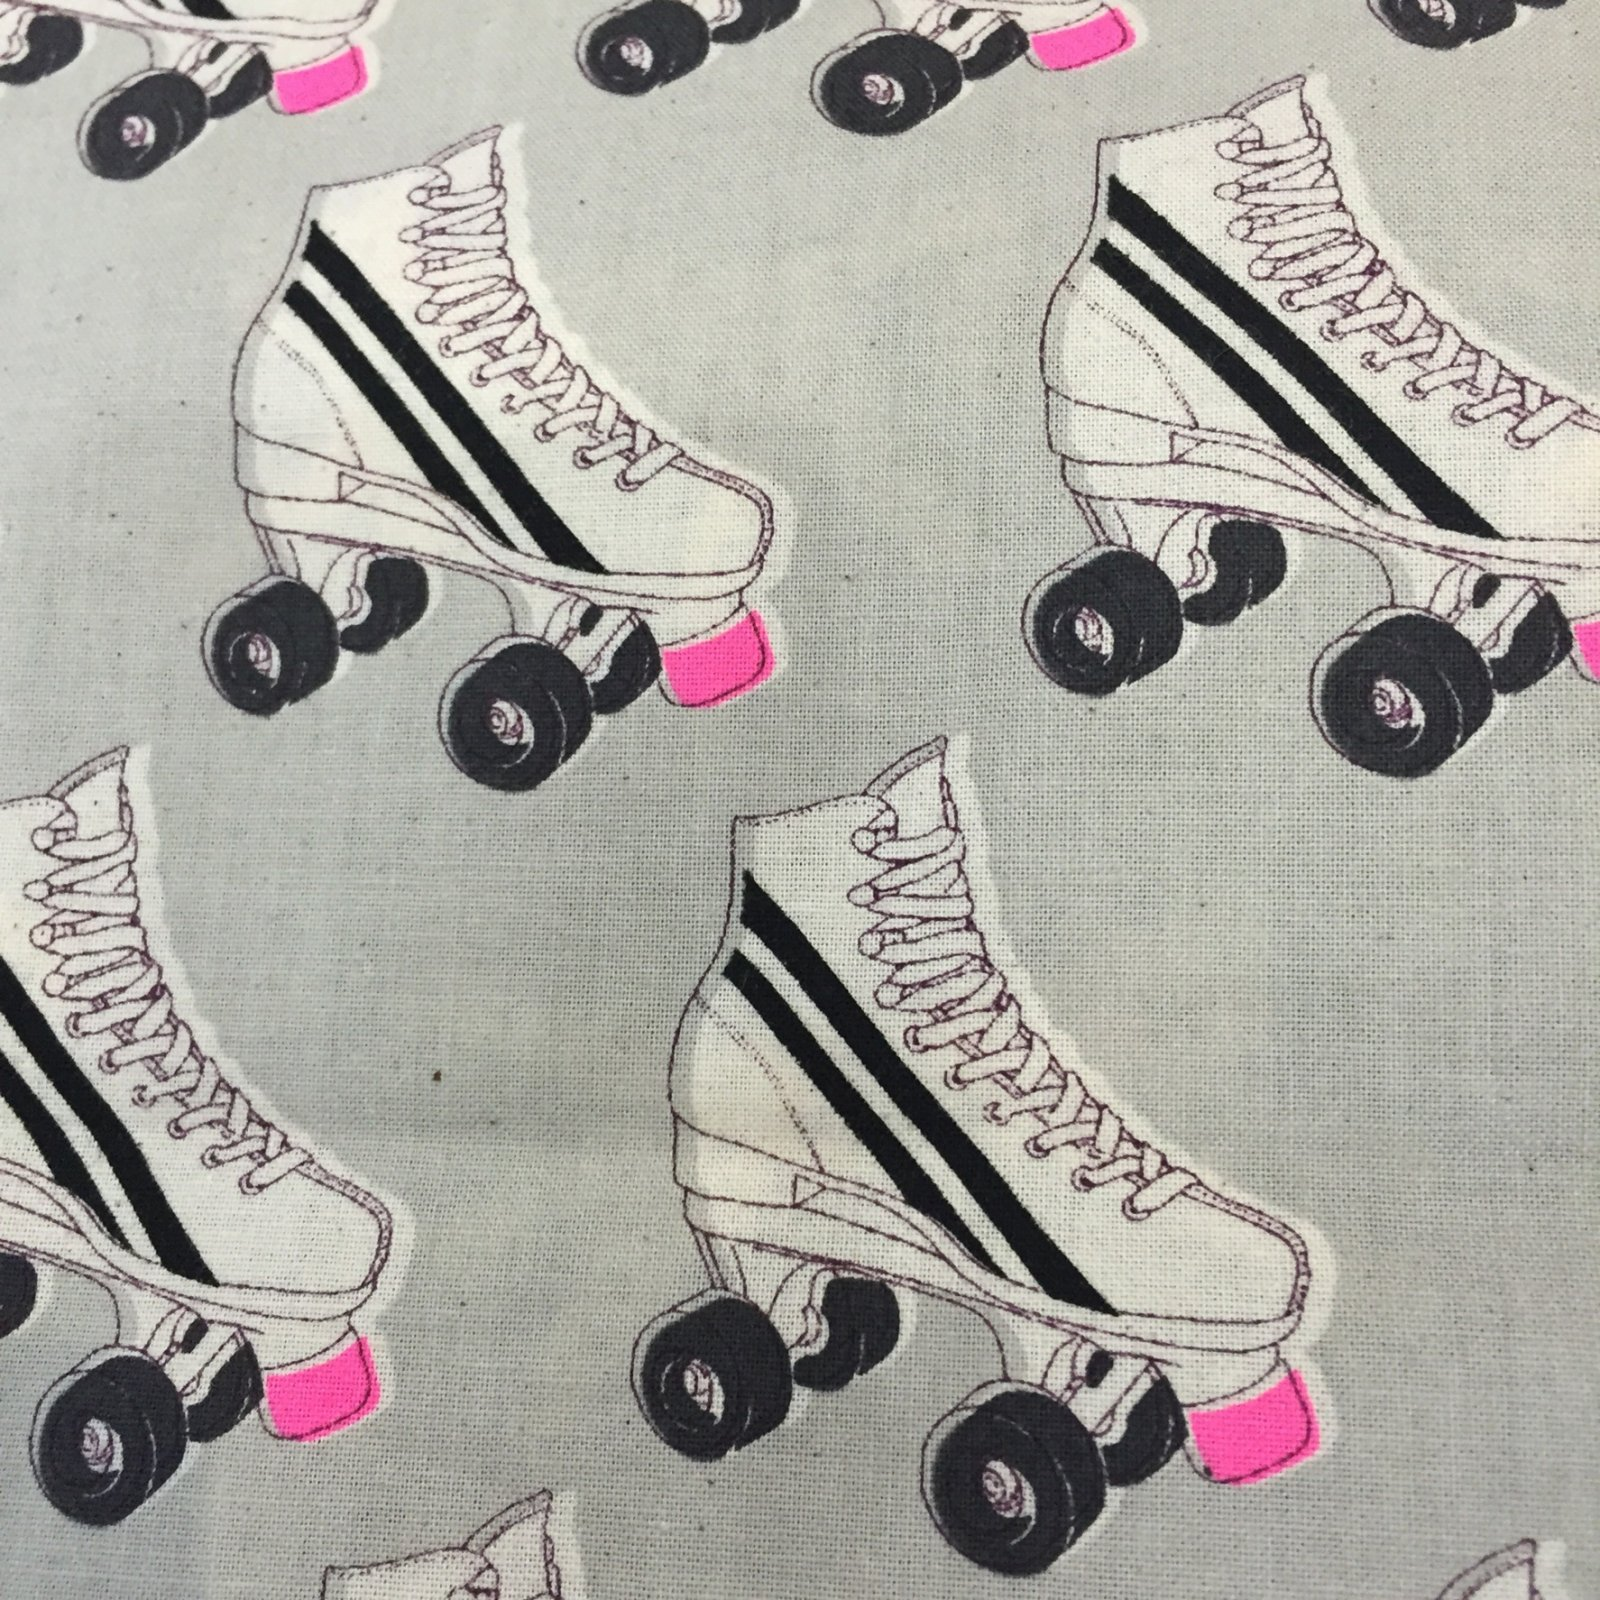 BACKORDERED Cotton + Steel Roller Rink Neon Pink Cotton Quilt Fabric